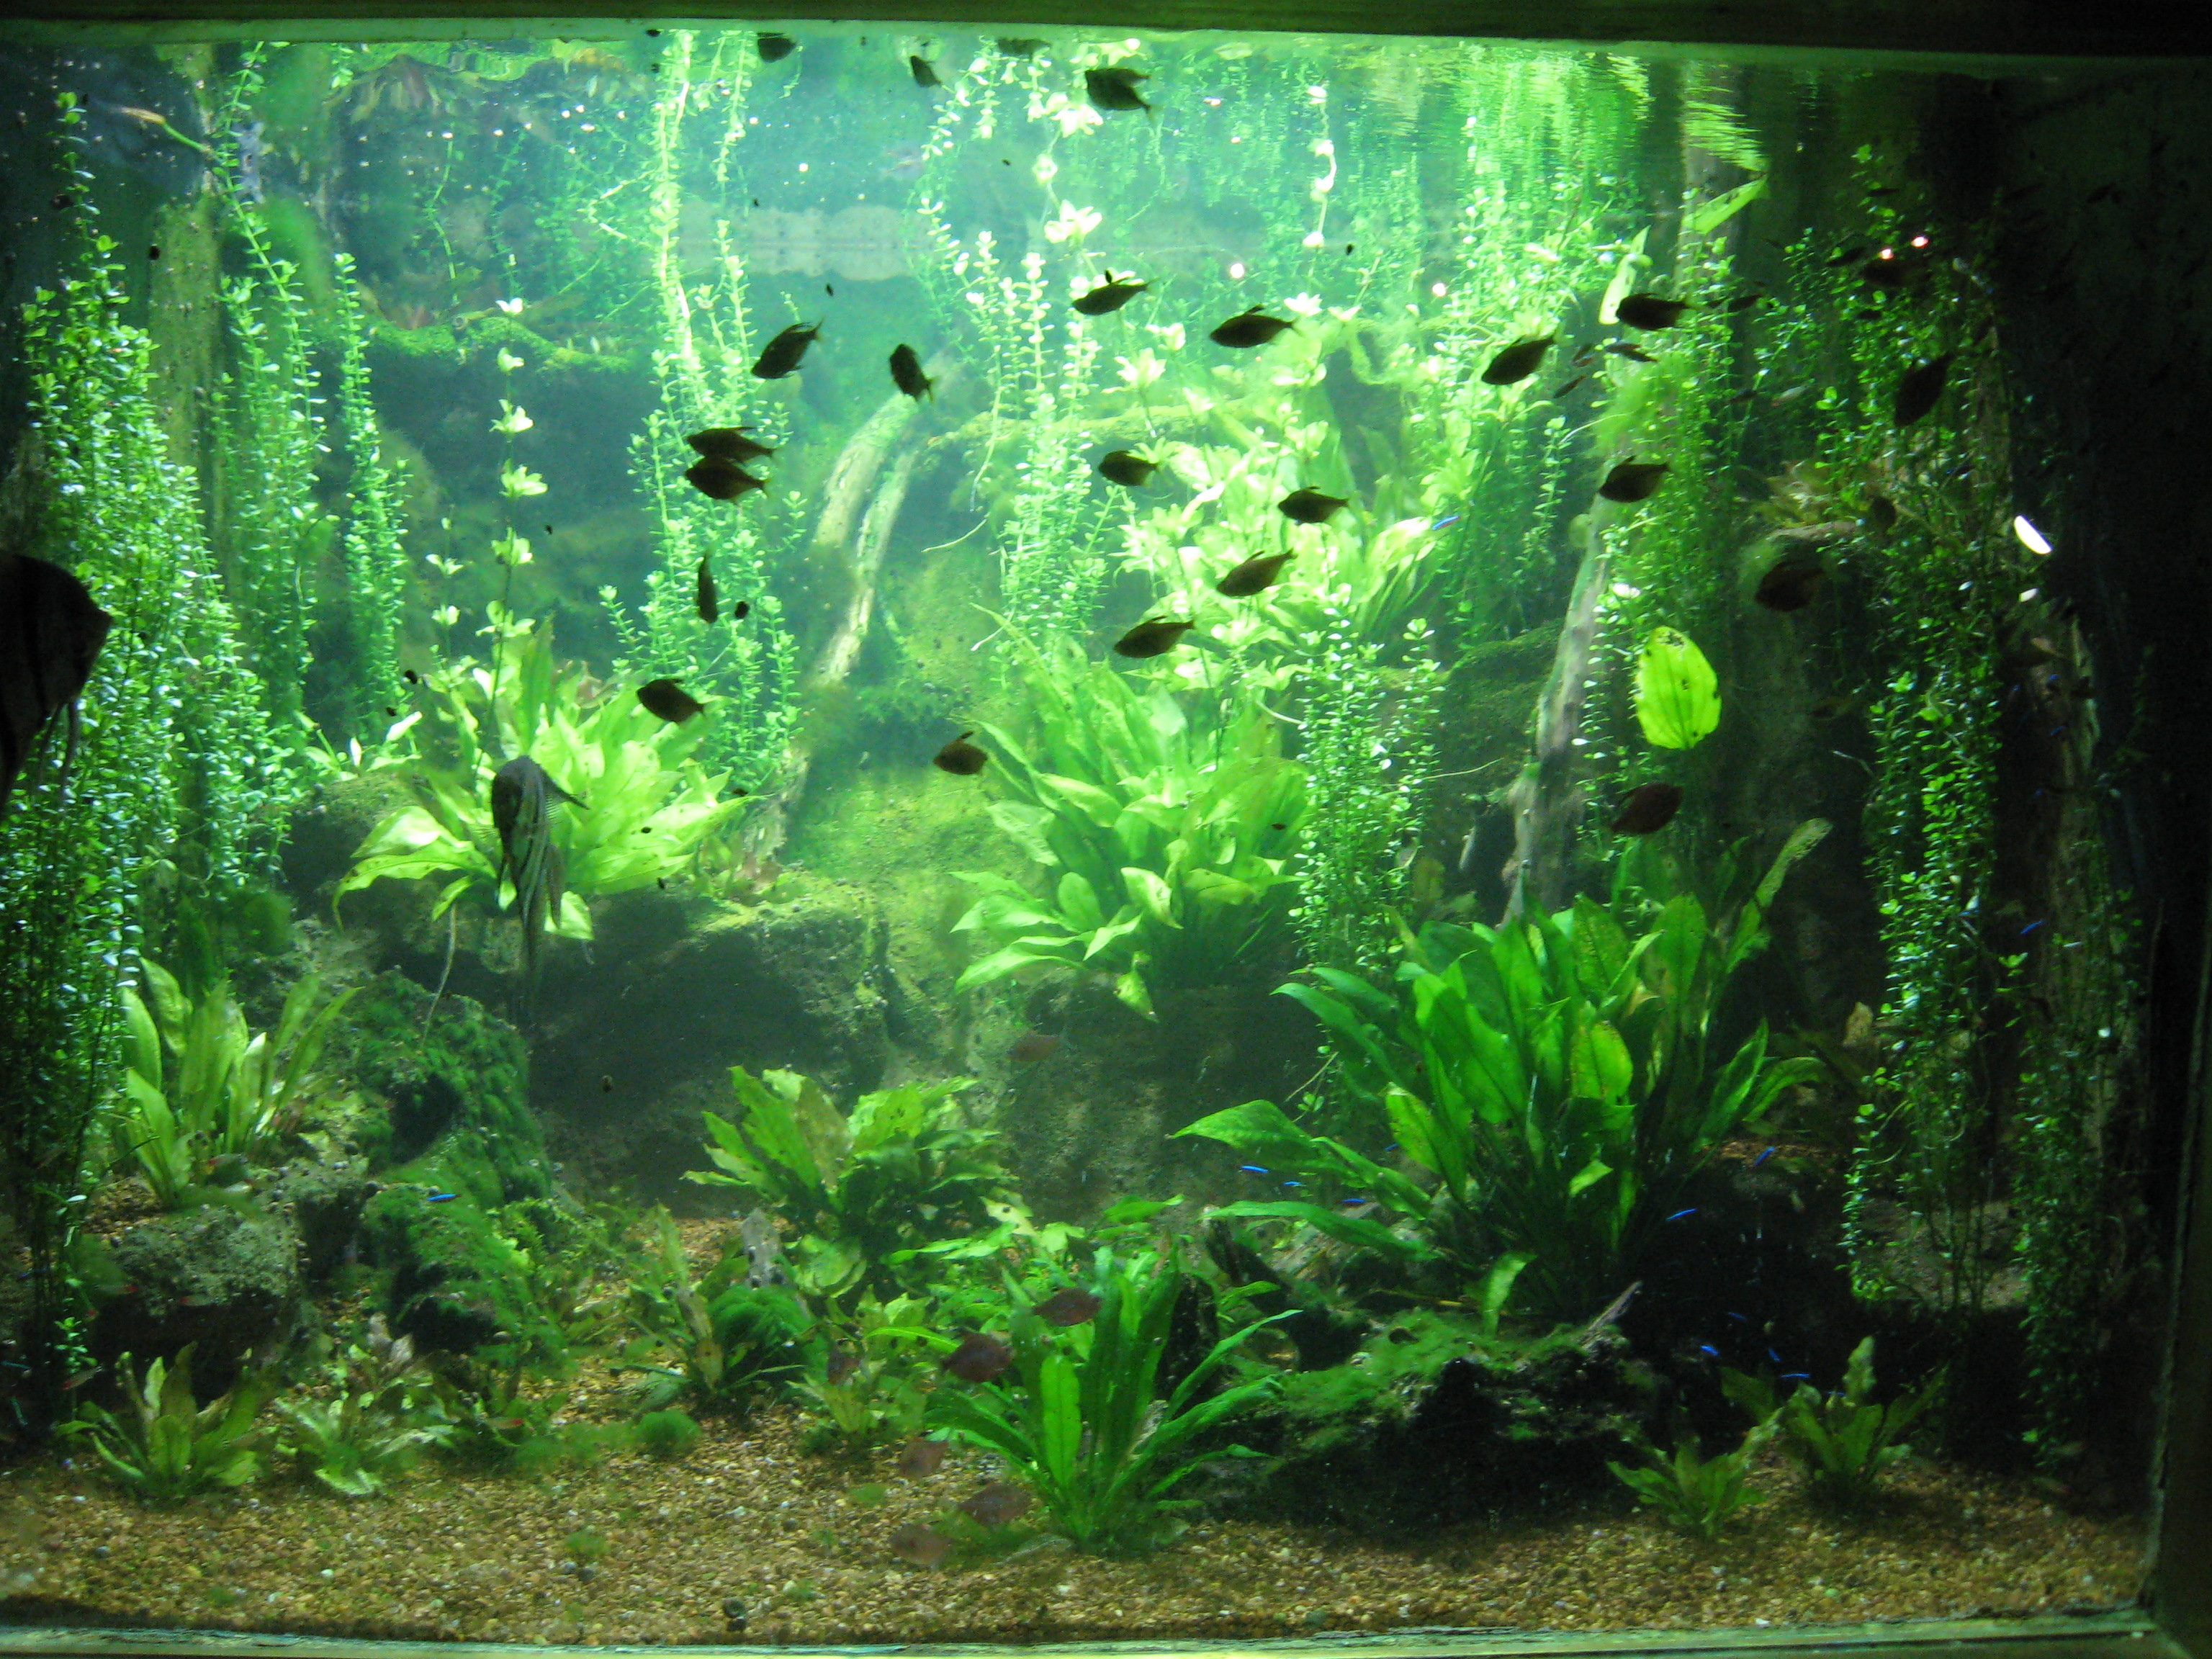 Freshwater aquarium fish buy - Your One Stop Shop For Discount Freshwater Fish Supplies